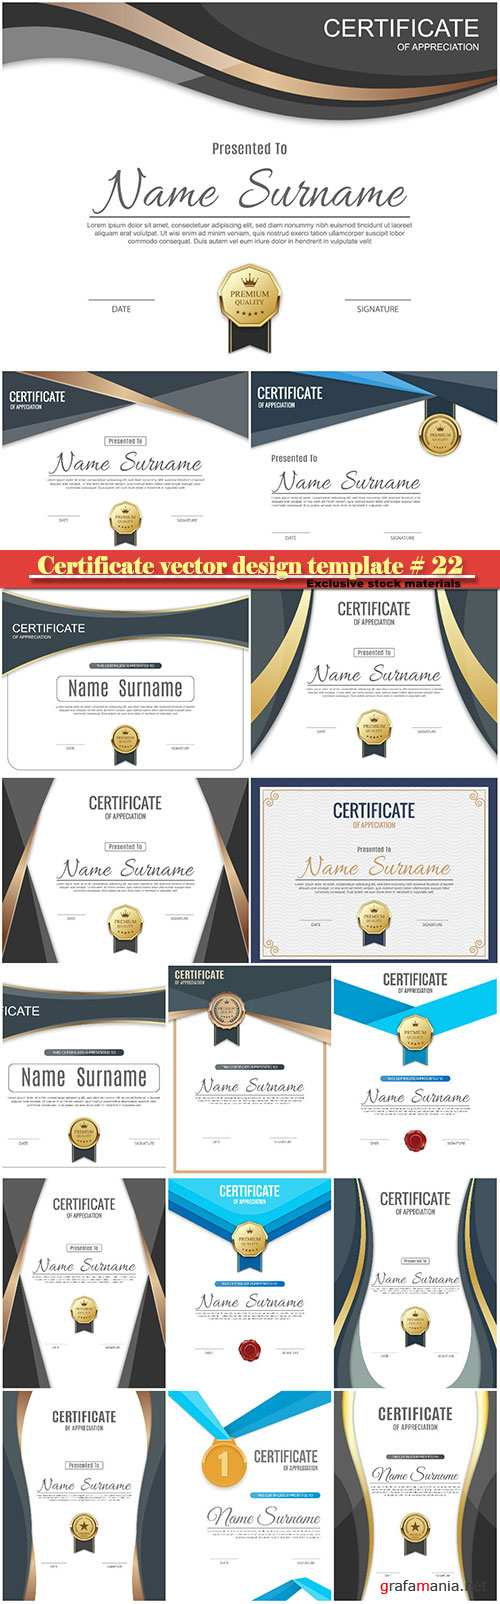 Certificate and vector diploma design template # 22